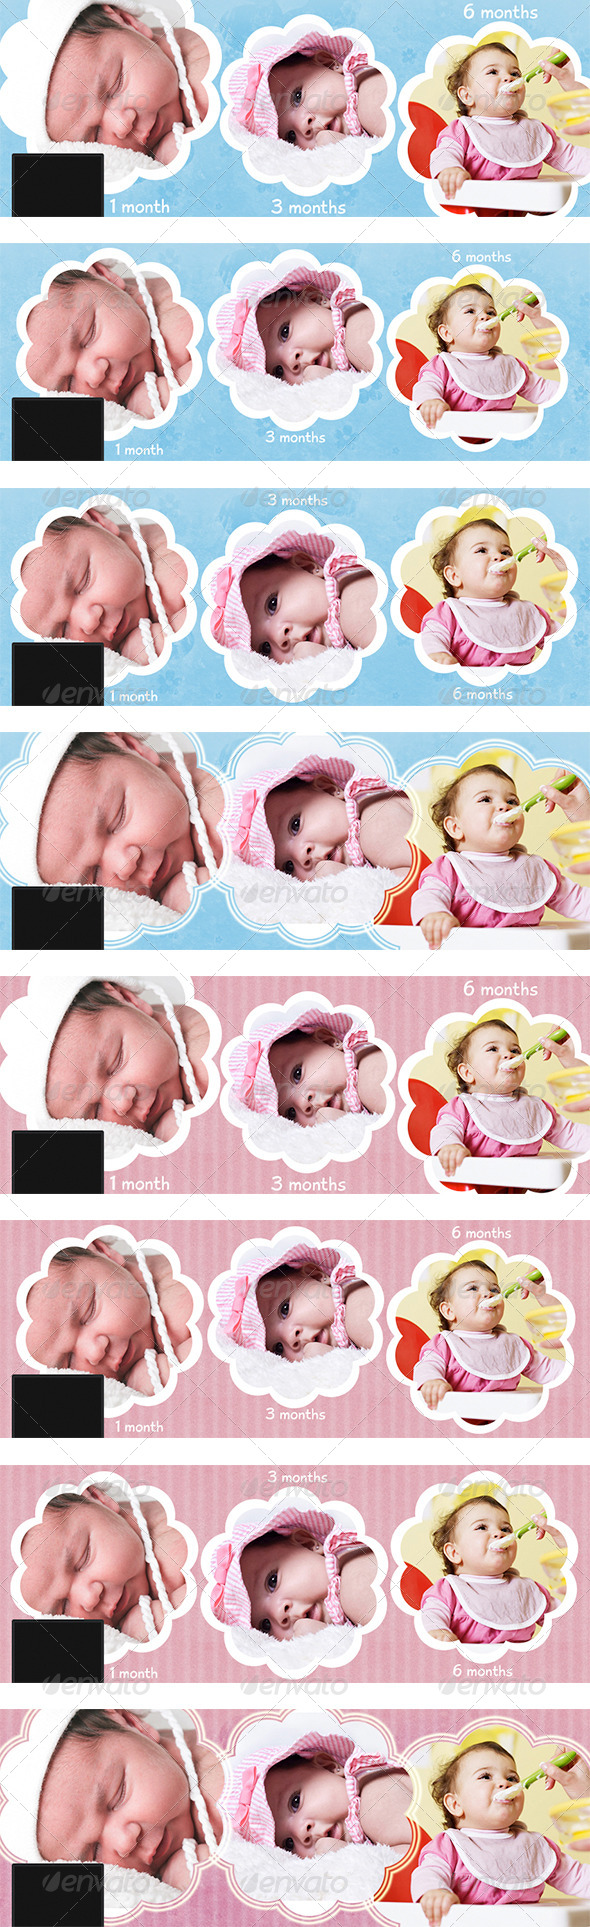 GraphicRiver Baby A Cute Facebook Timeline Cover Template 5566704